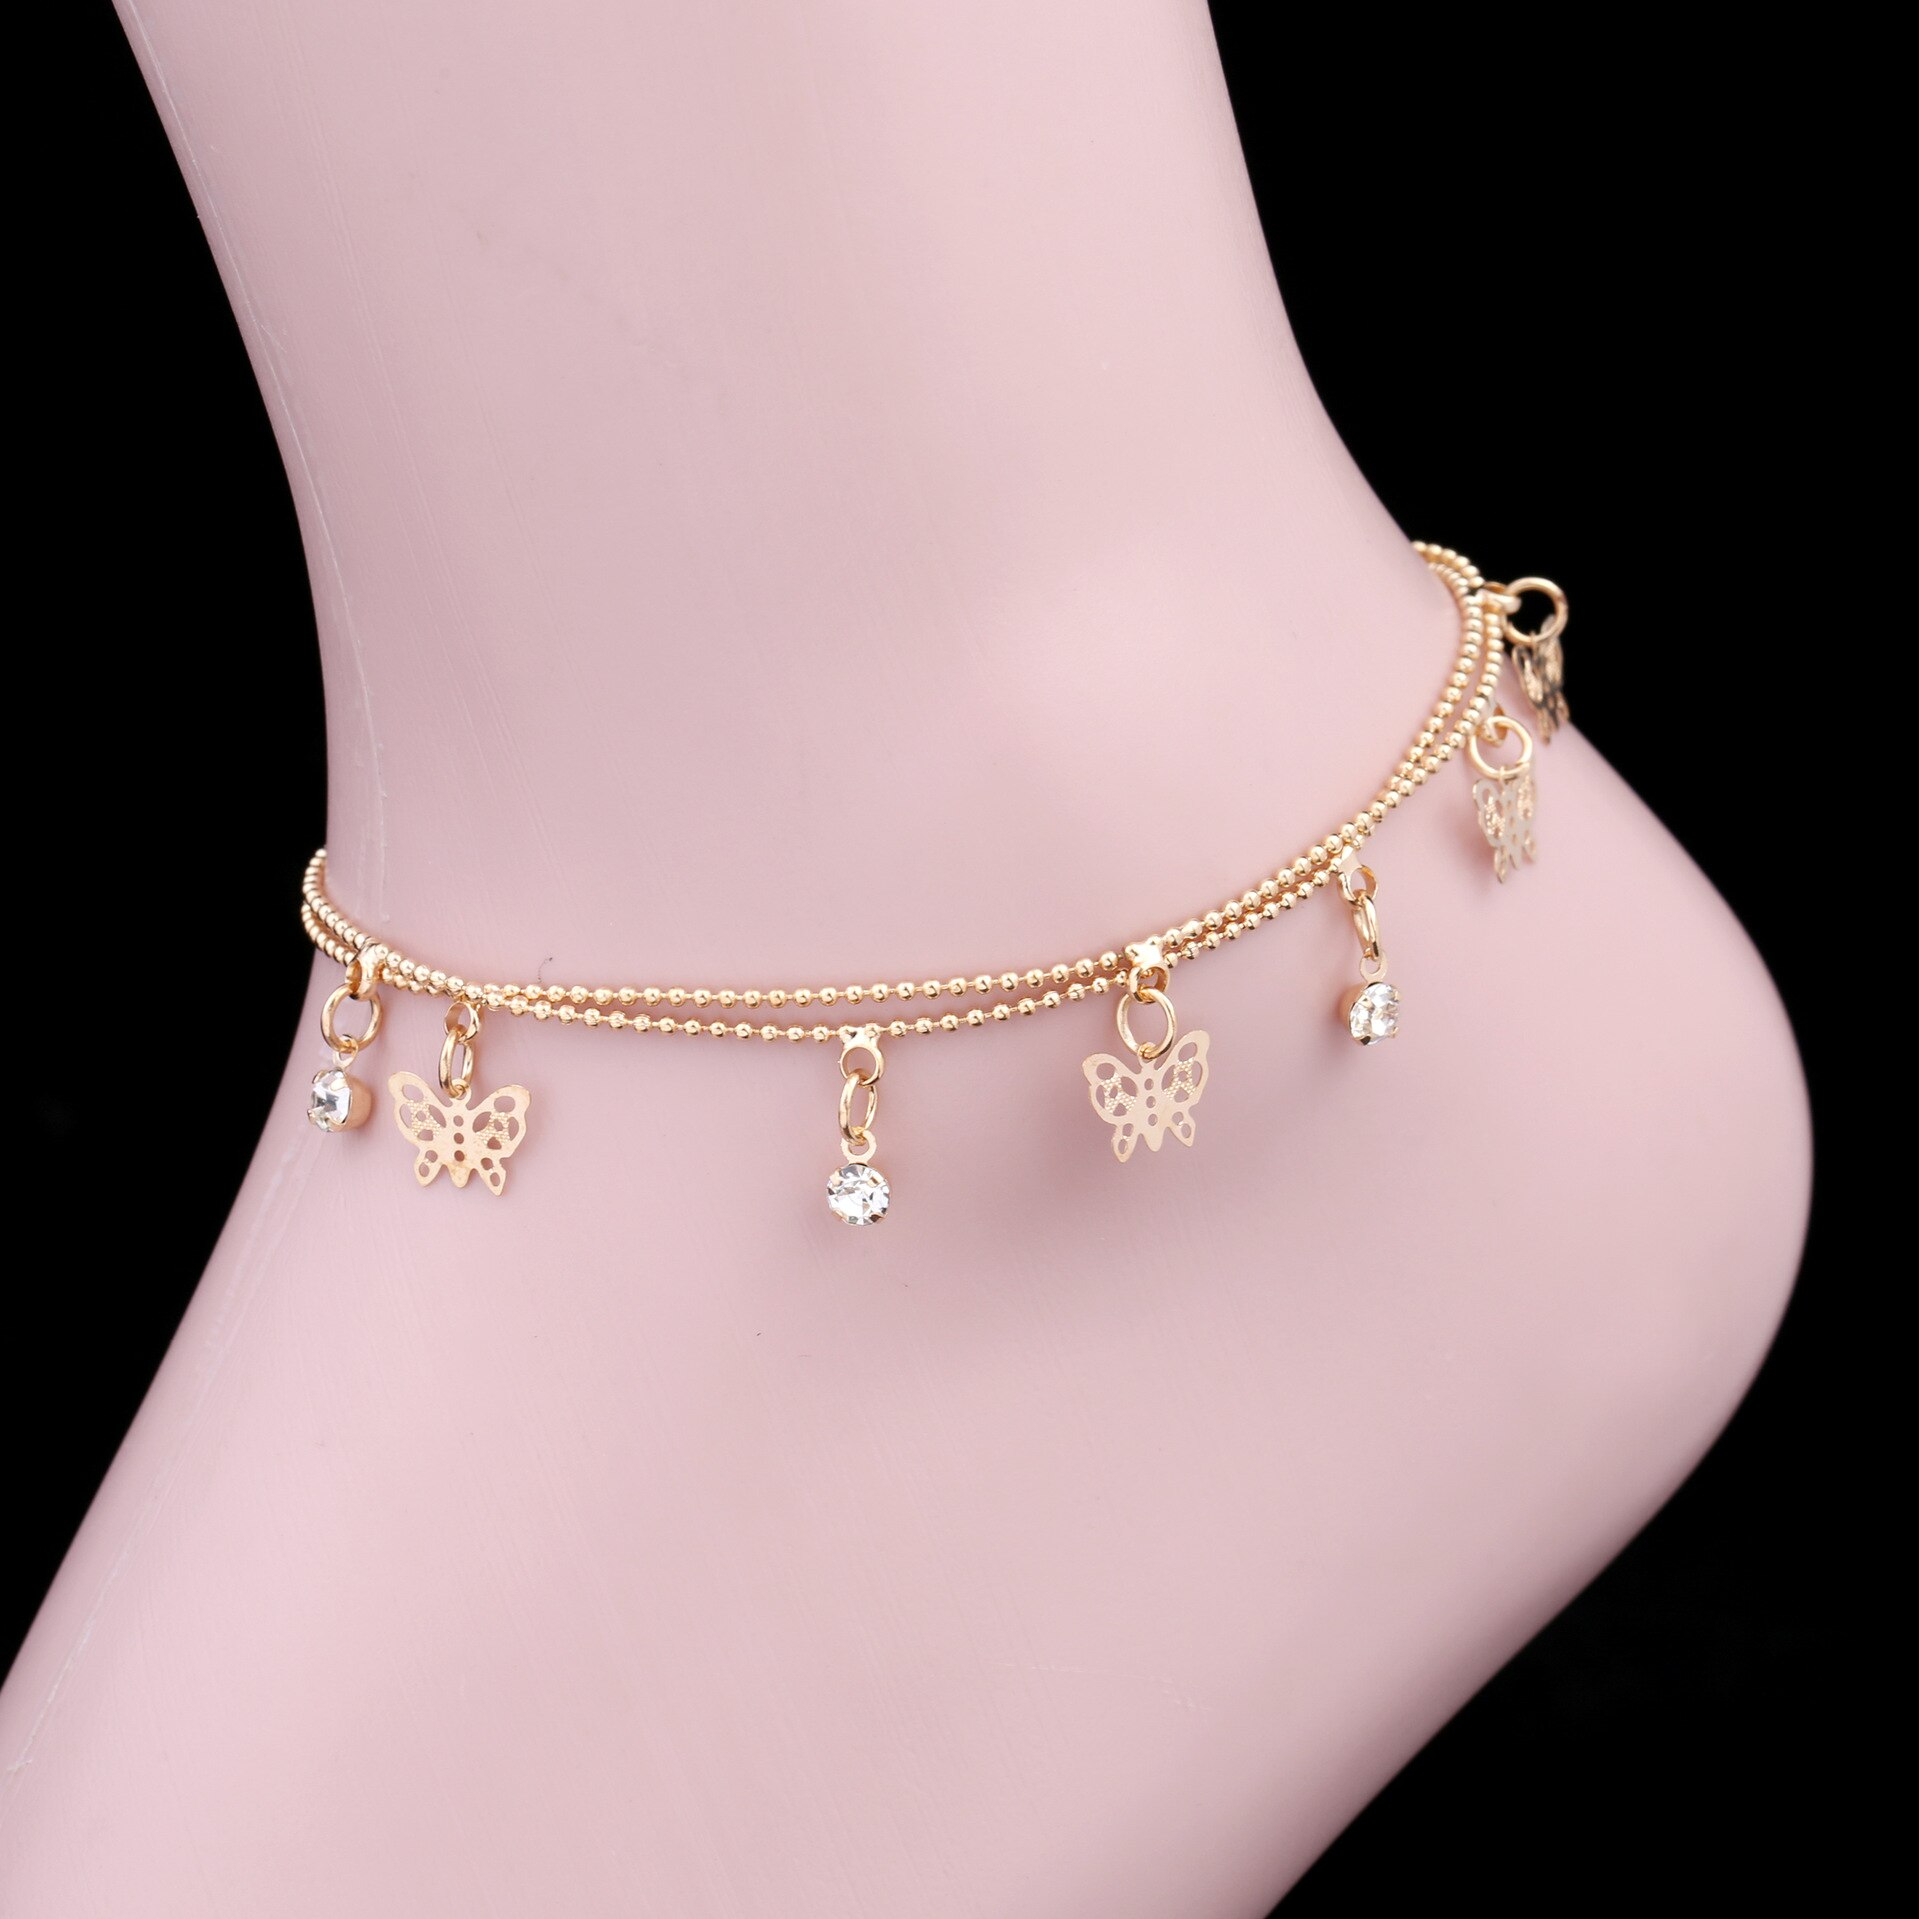 [해외]Anklets for women butterfly anklet Ms.Europe America fashion simple feet jewelry Anklets For Women Ankle Chain Leg Bracelet/Anklets for women butt